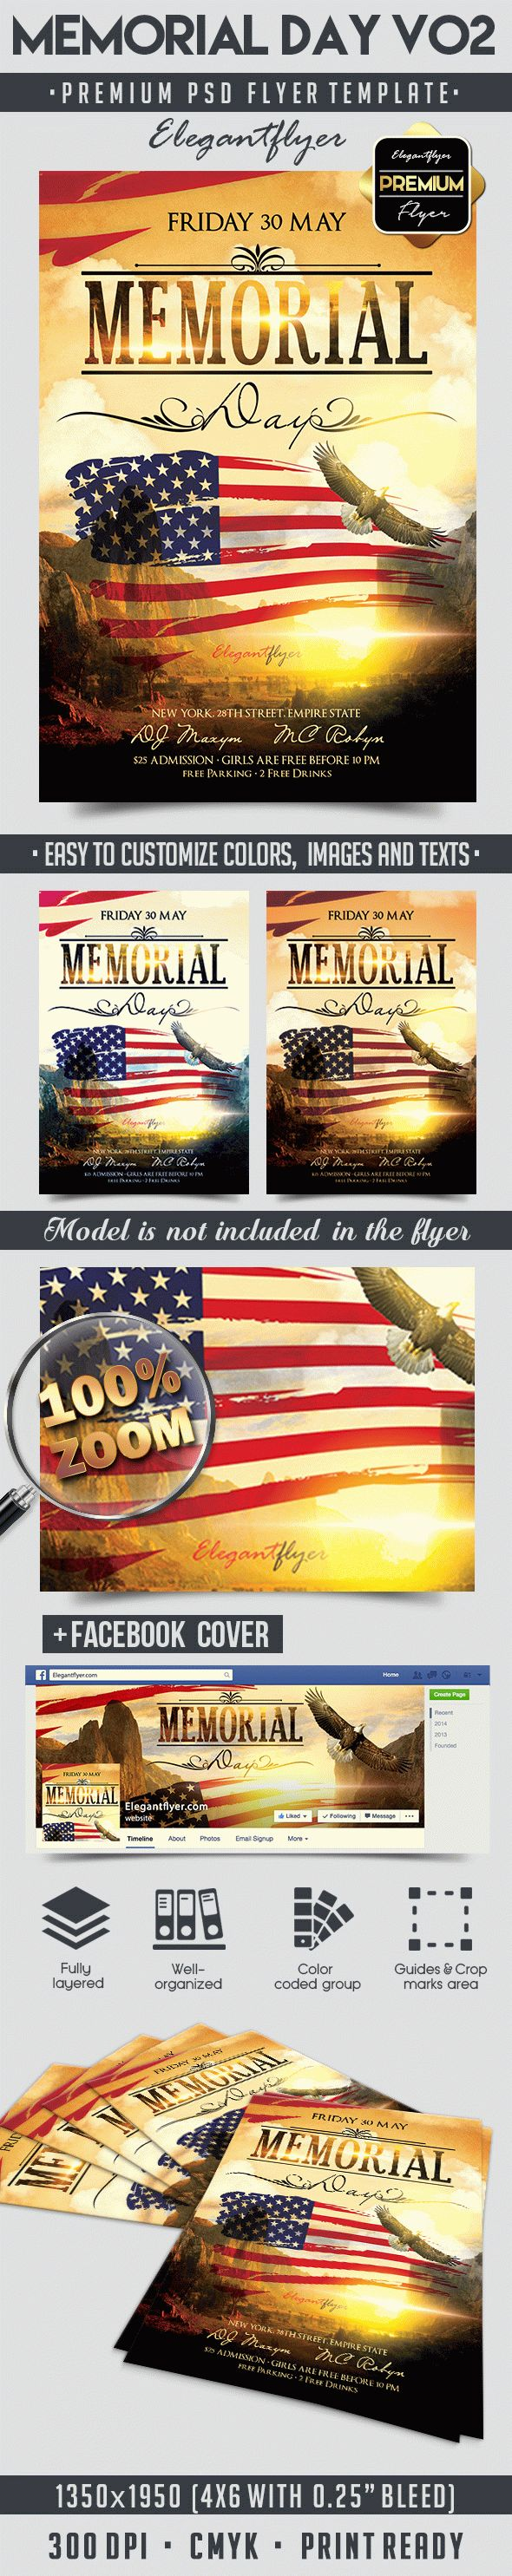 Memorial Day V02 – Flyer PSD Template